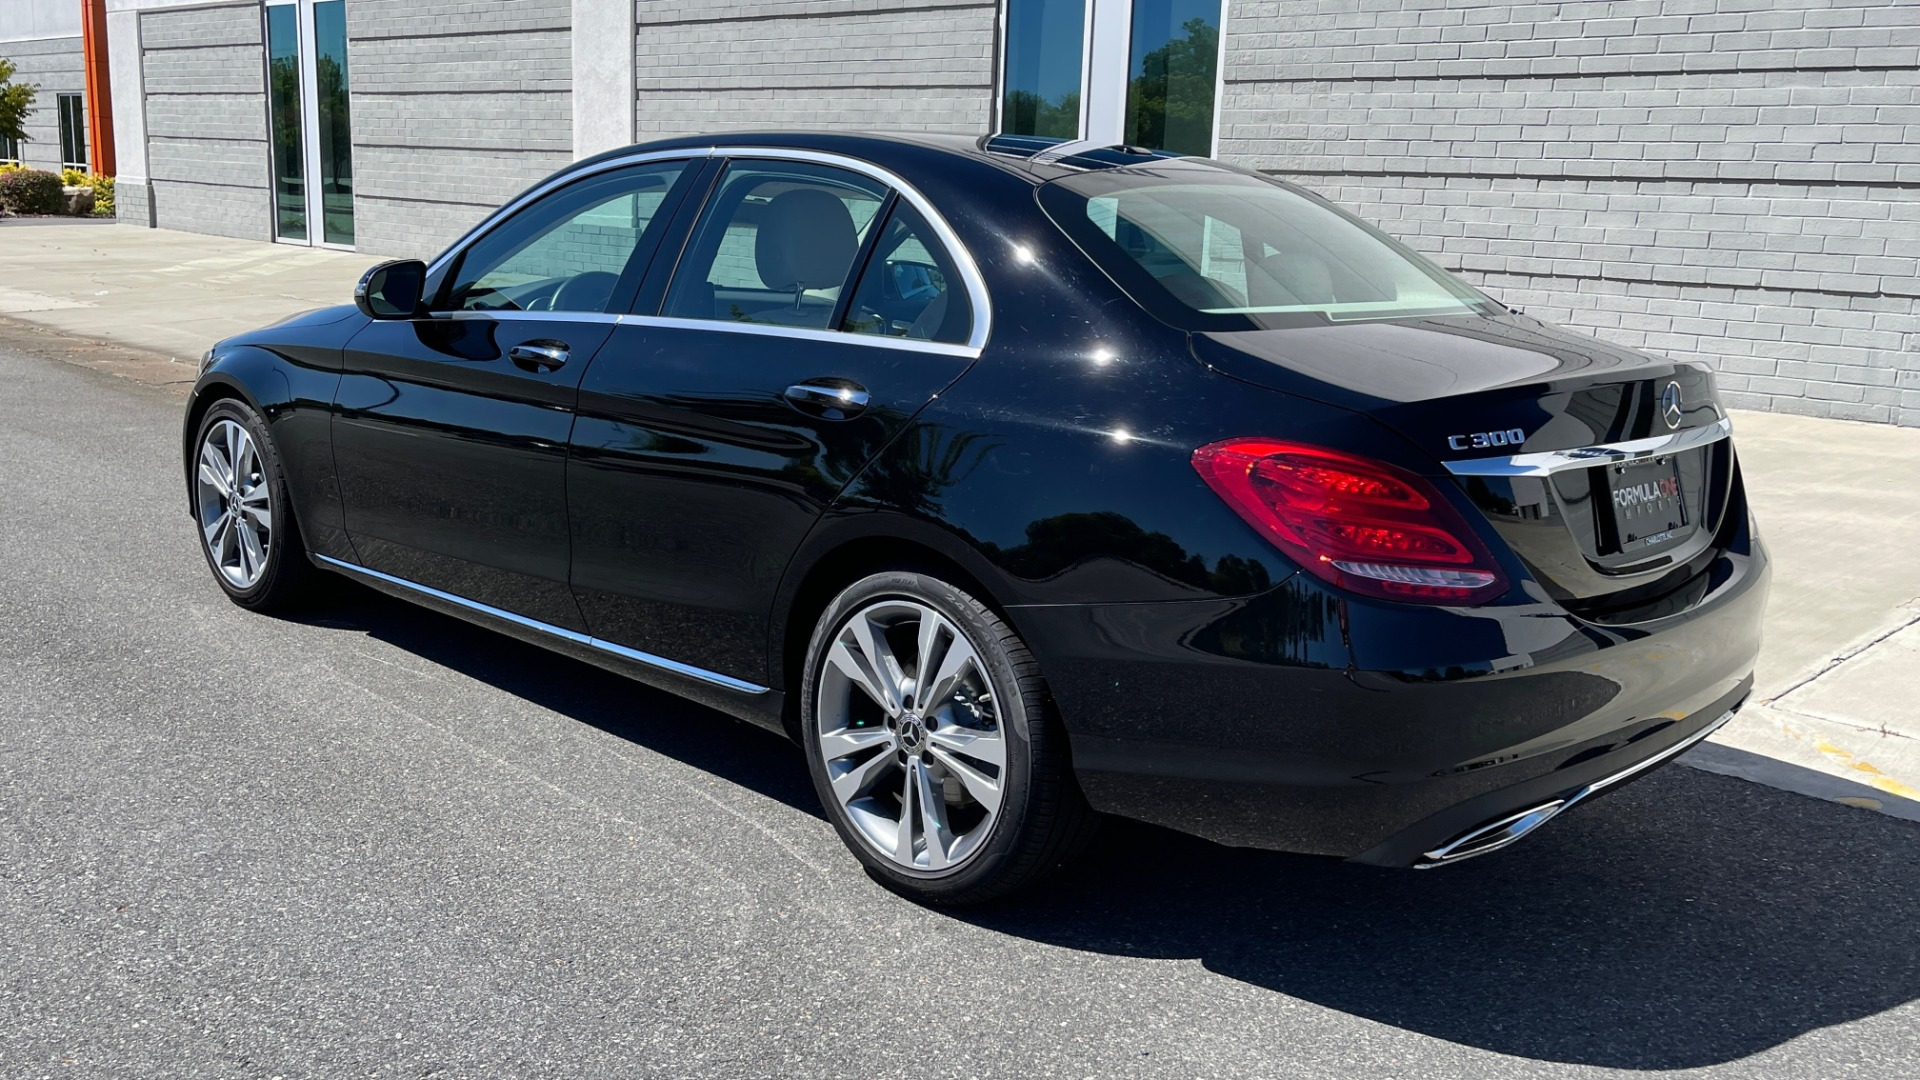 Used 2018 Mercedes-Benz C-CLASS C 300 PREMIUM / APPLE CARPLAY / SUNROOF / REARVIEW for sale $31,995 at Formula Imports in Charlotte NC 28227 5